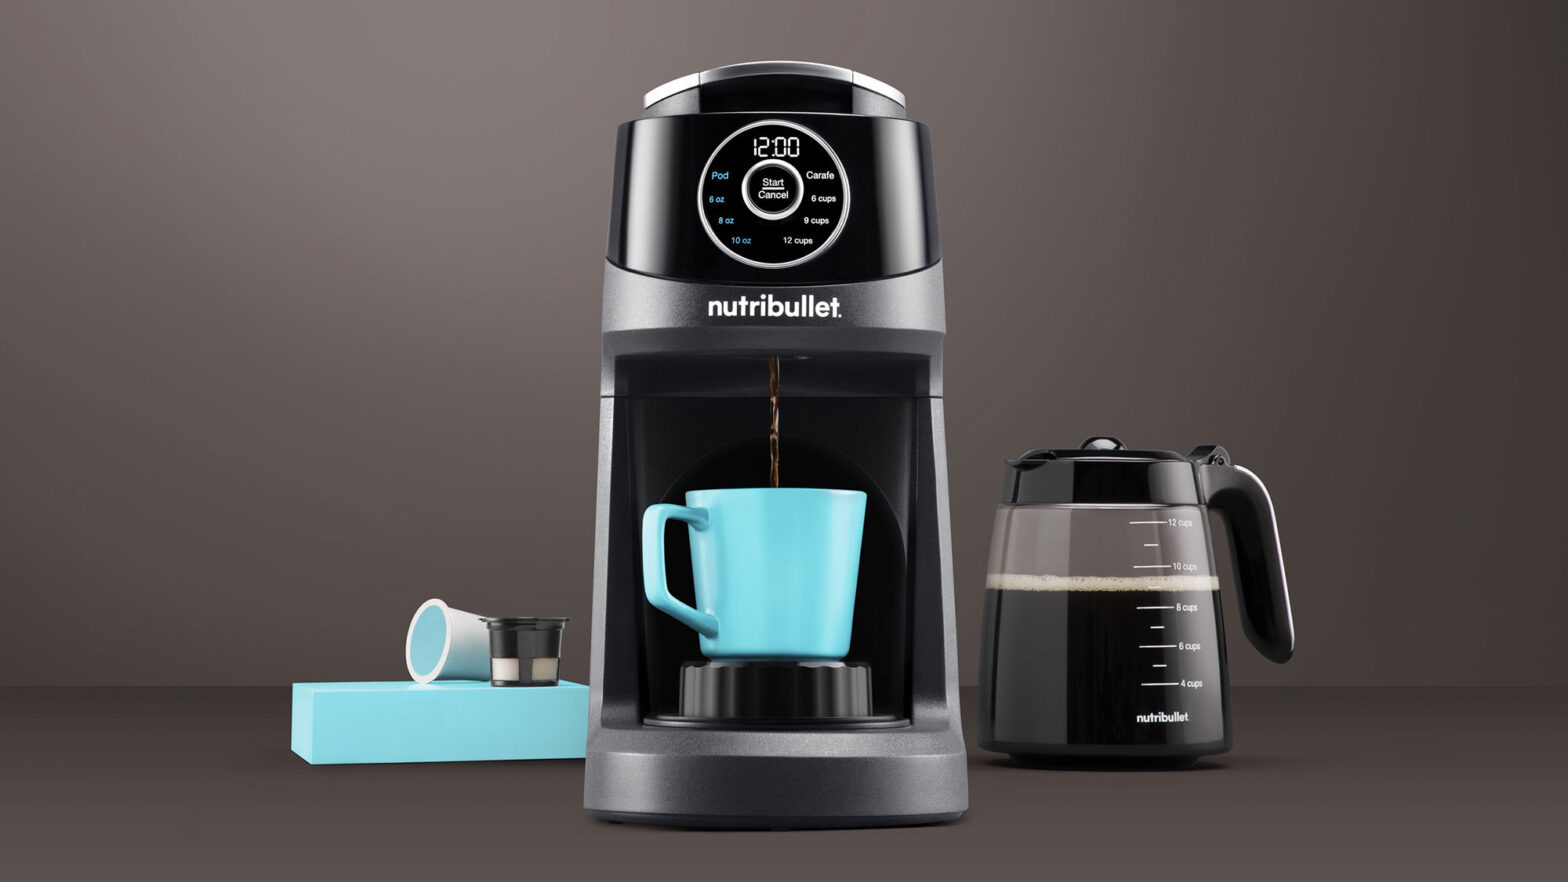 nutribullet Brew Choice Pod and Carafe